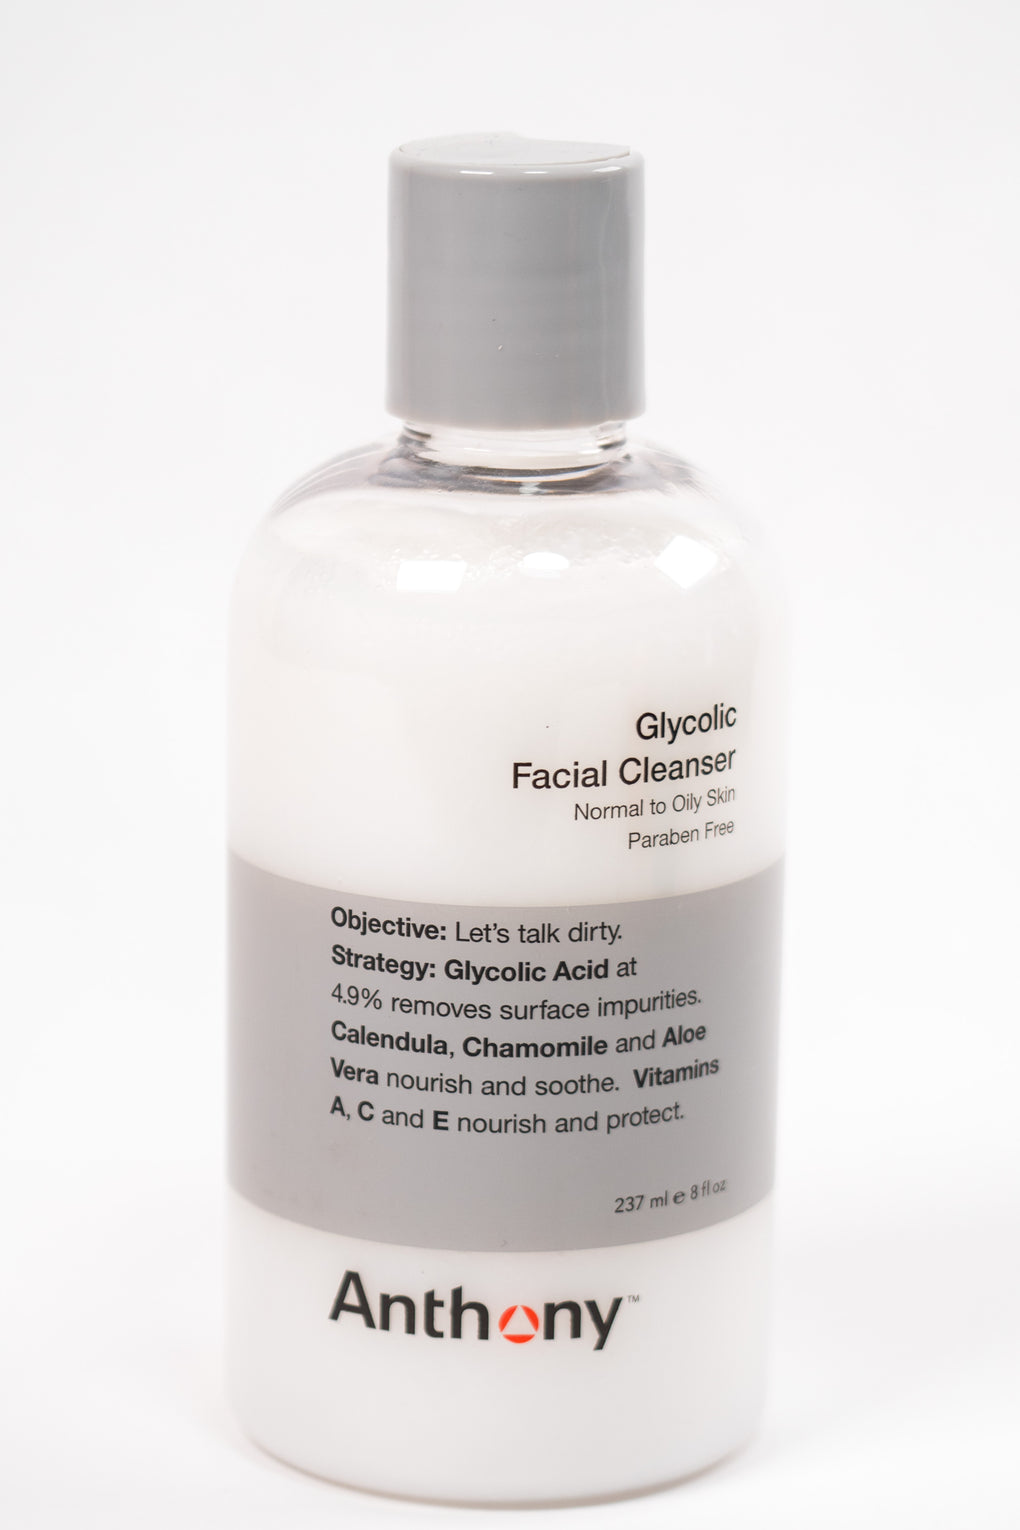 Anthony Glycolic Facial Cleanser at Consigliere